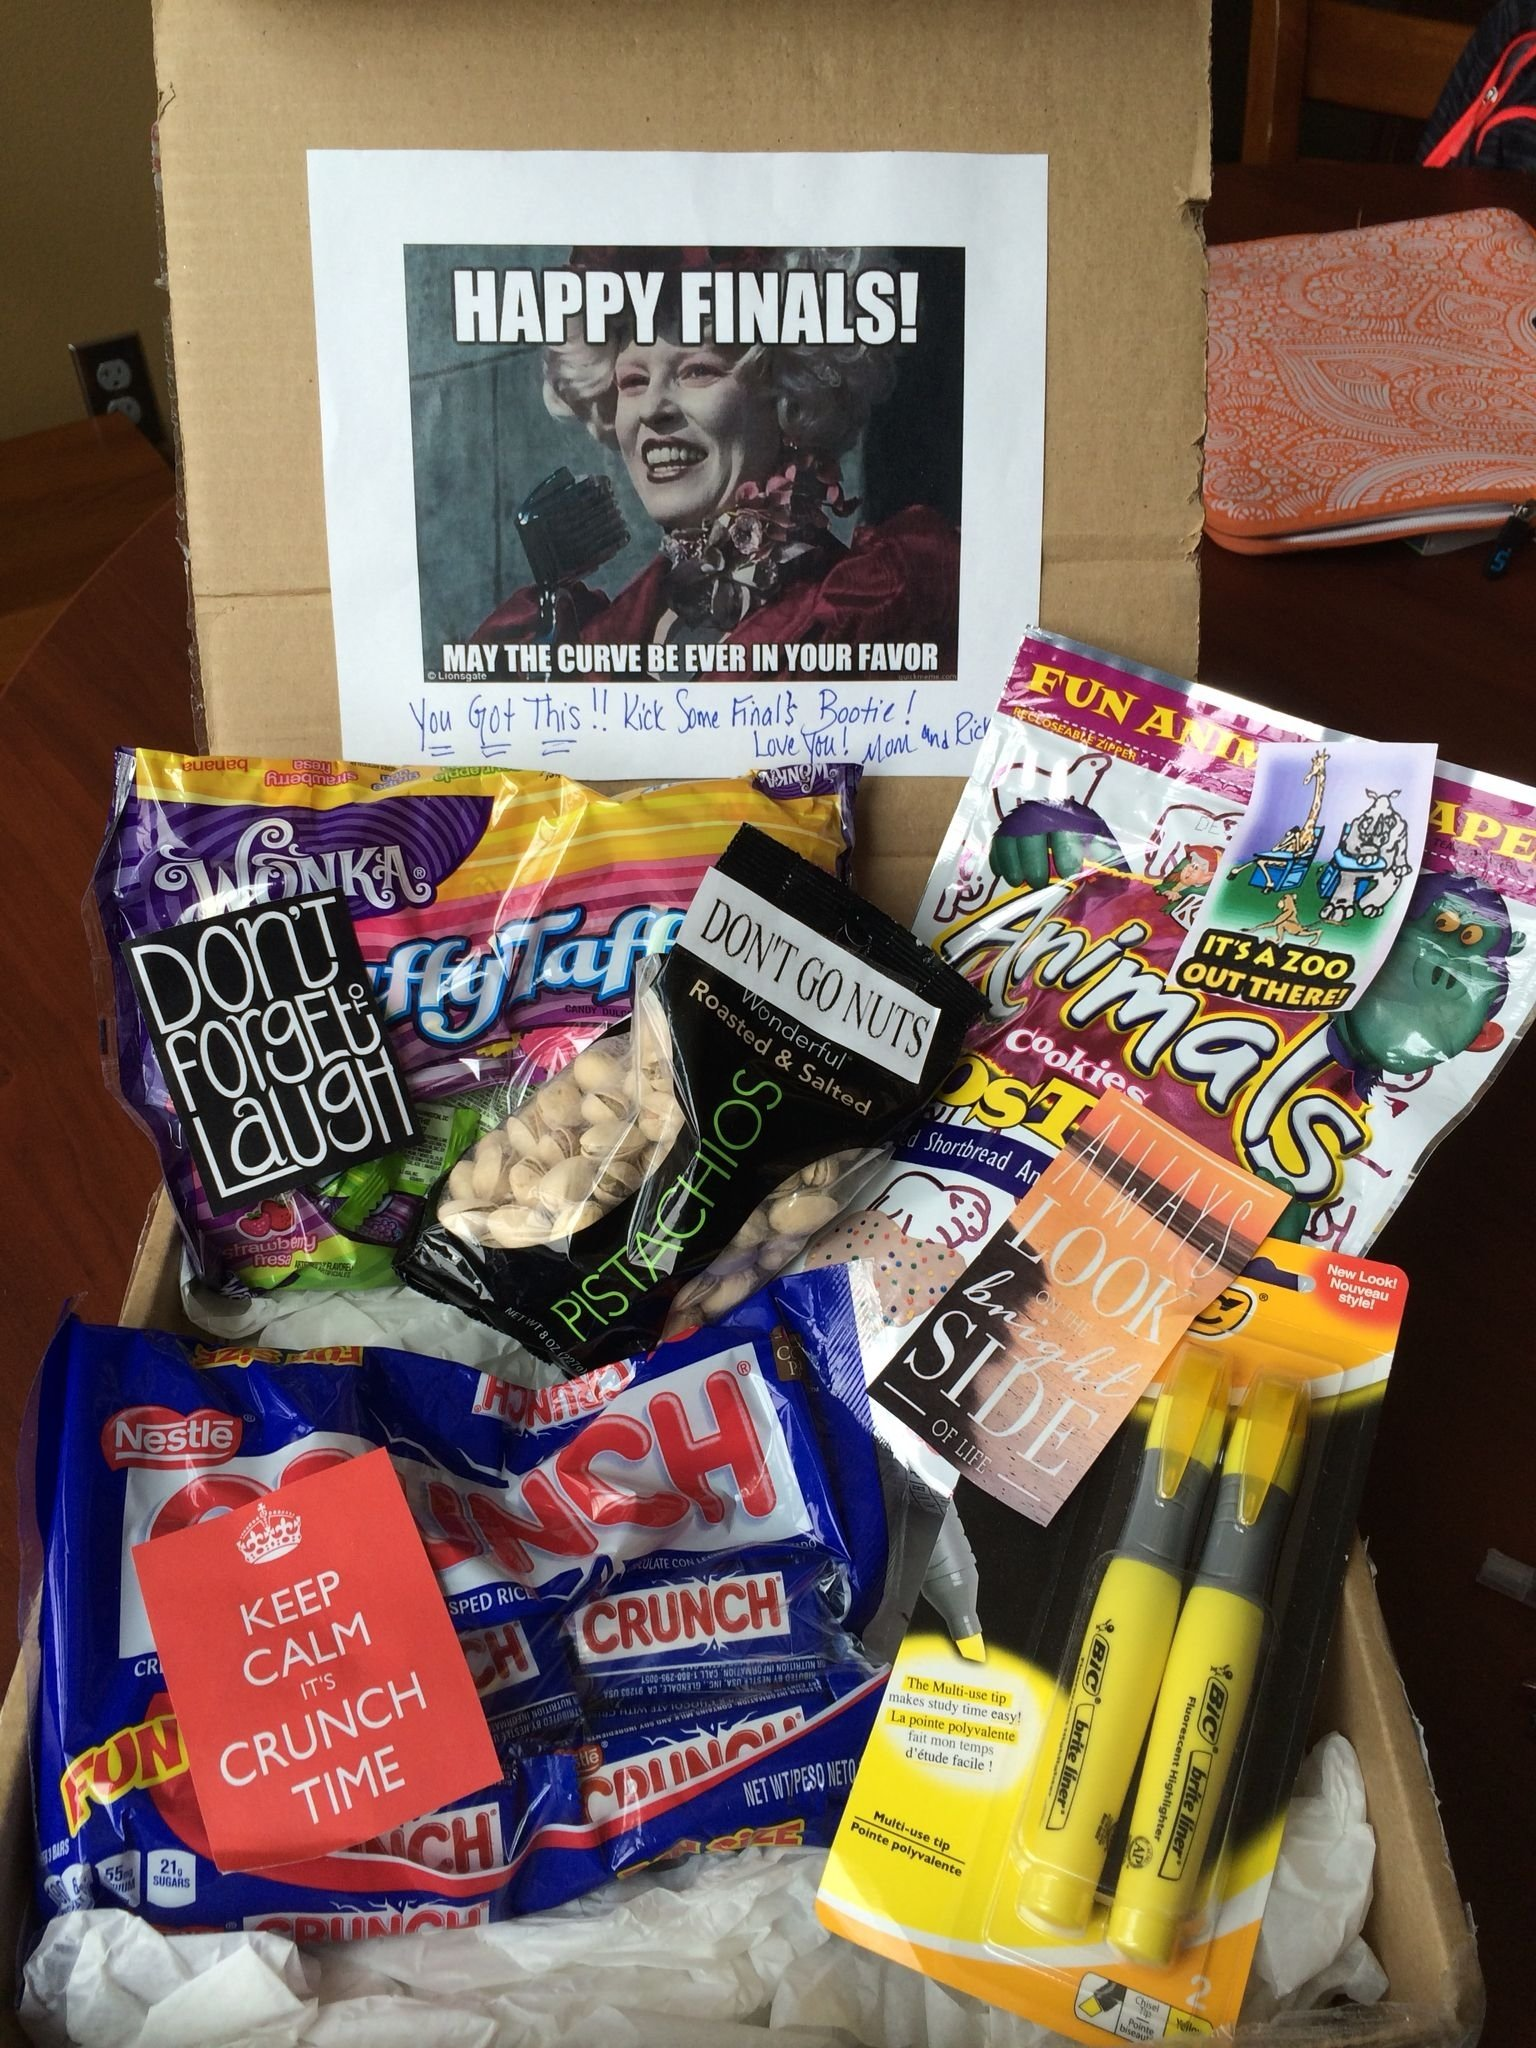 10 Attractive Final Exam Care Package Ideas 15 useful gifts any college student will totally love finals week 1 2021